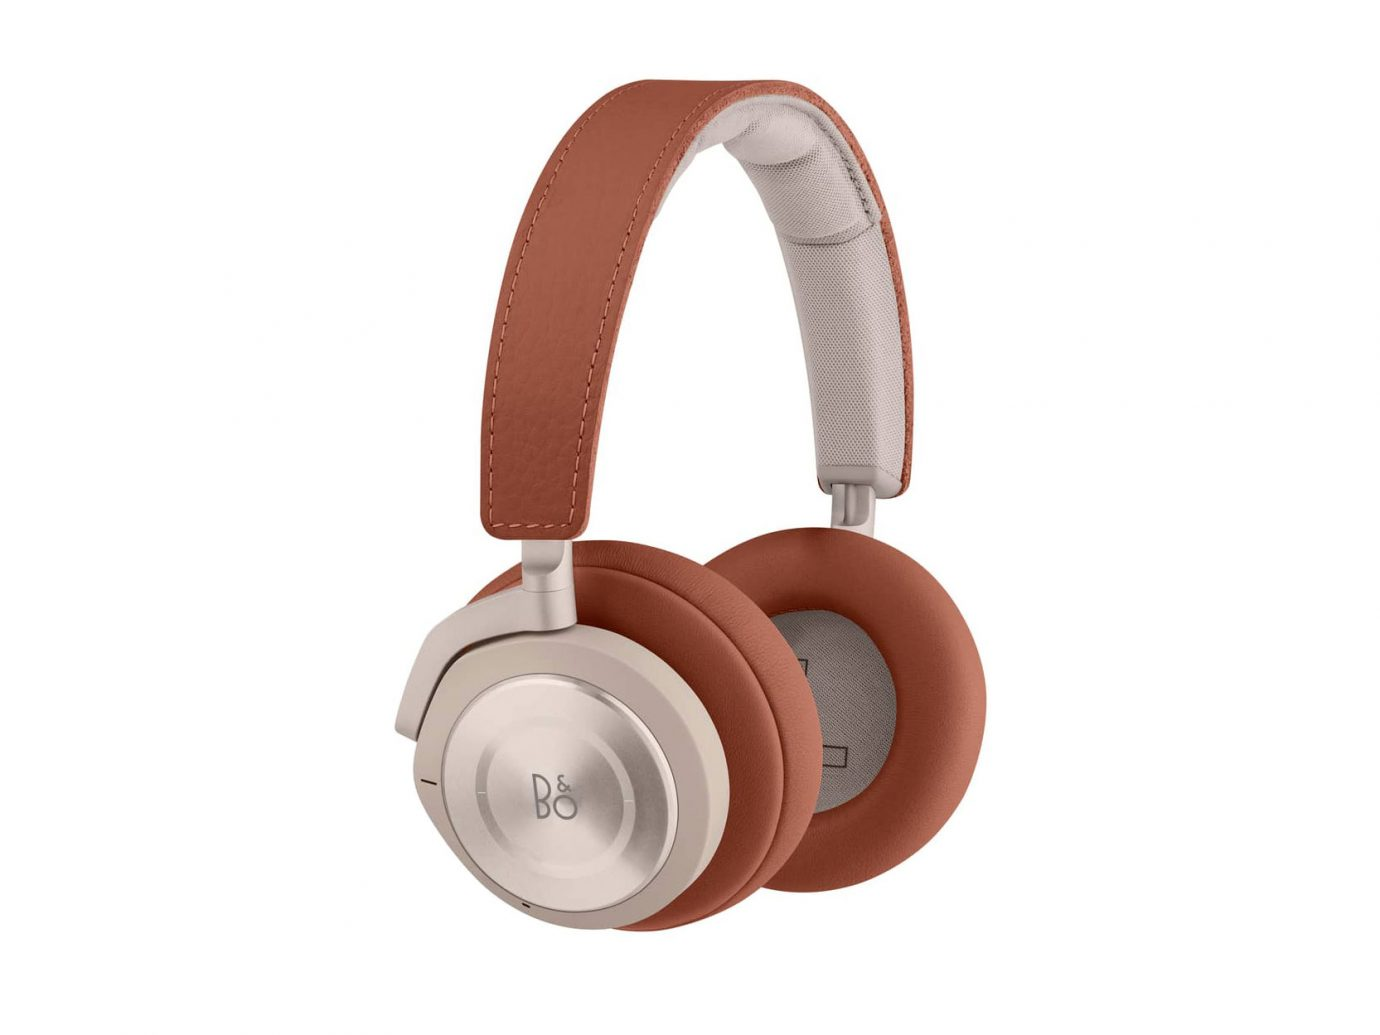 Bang & Olufsen H9I Wireless Noise Canceling On-Ear Headphones